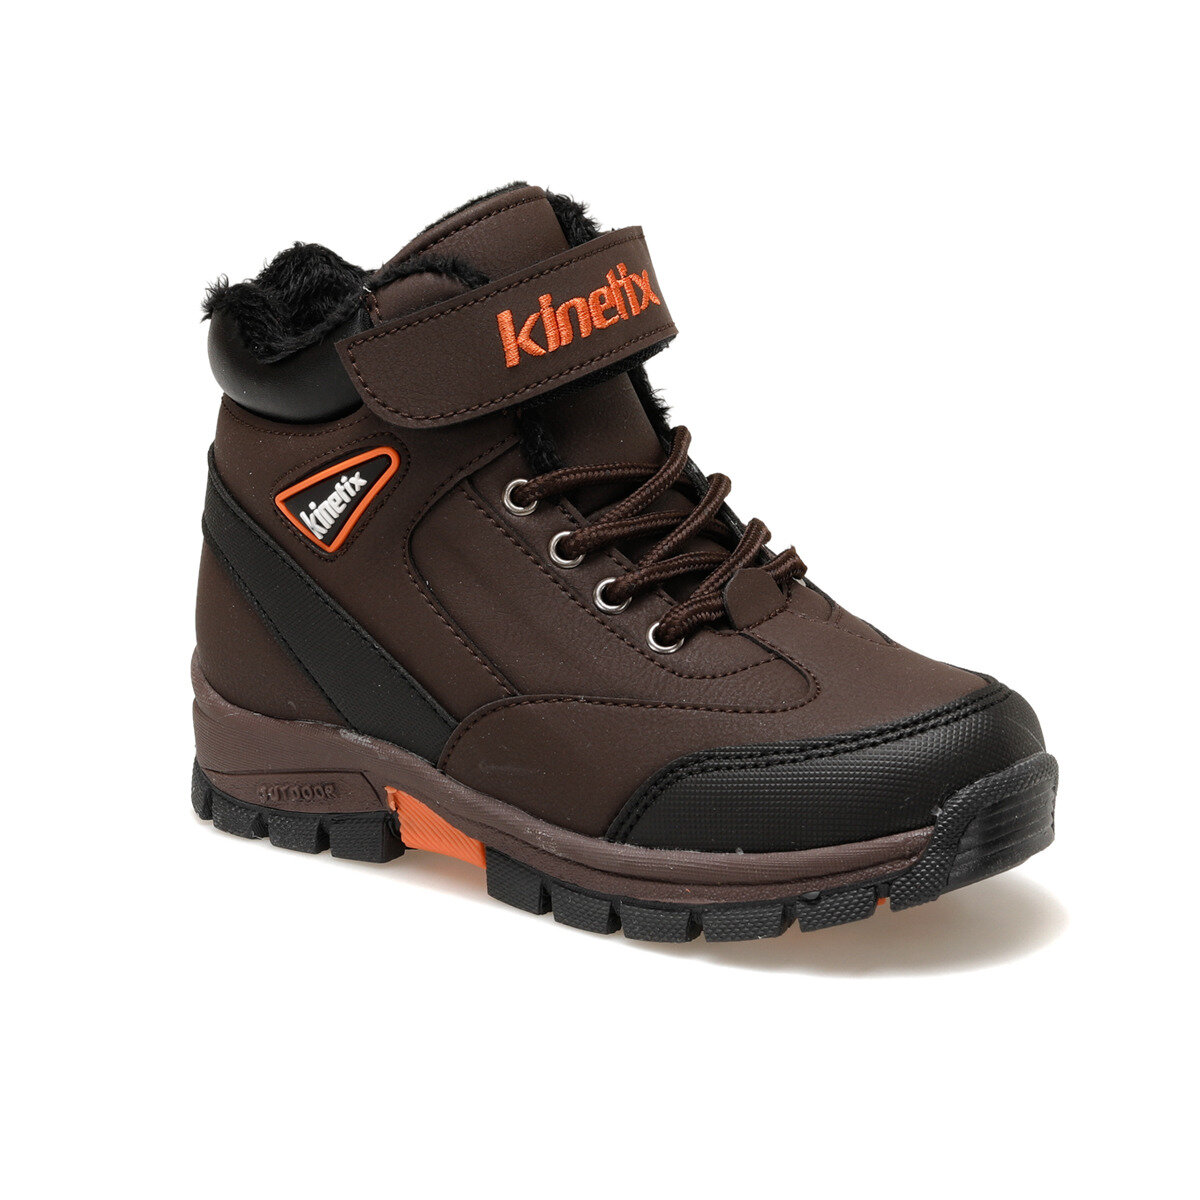 FLO MAYS 9PR Brown Male Child Outdoor KINETIX